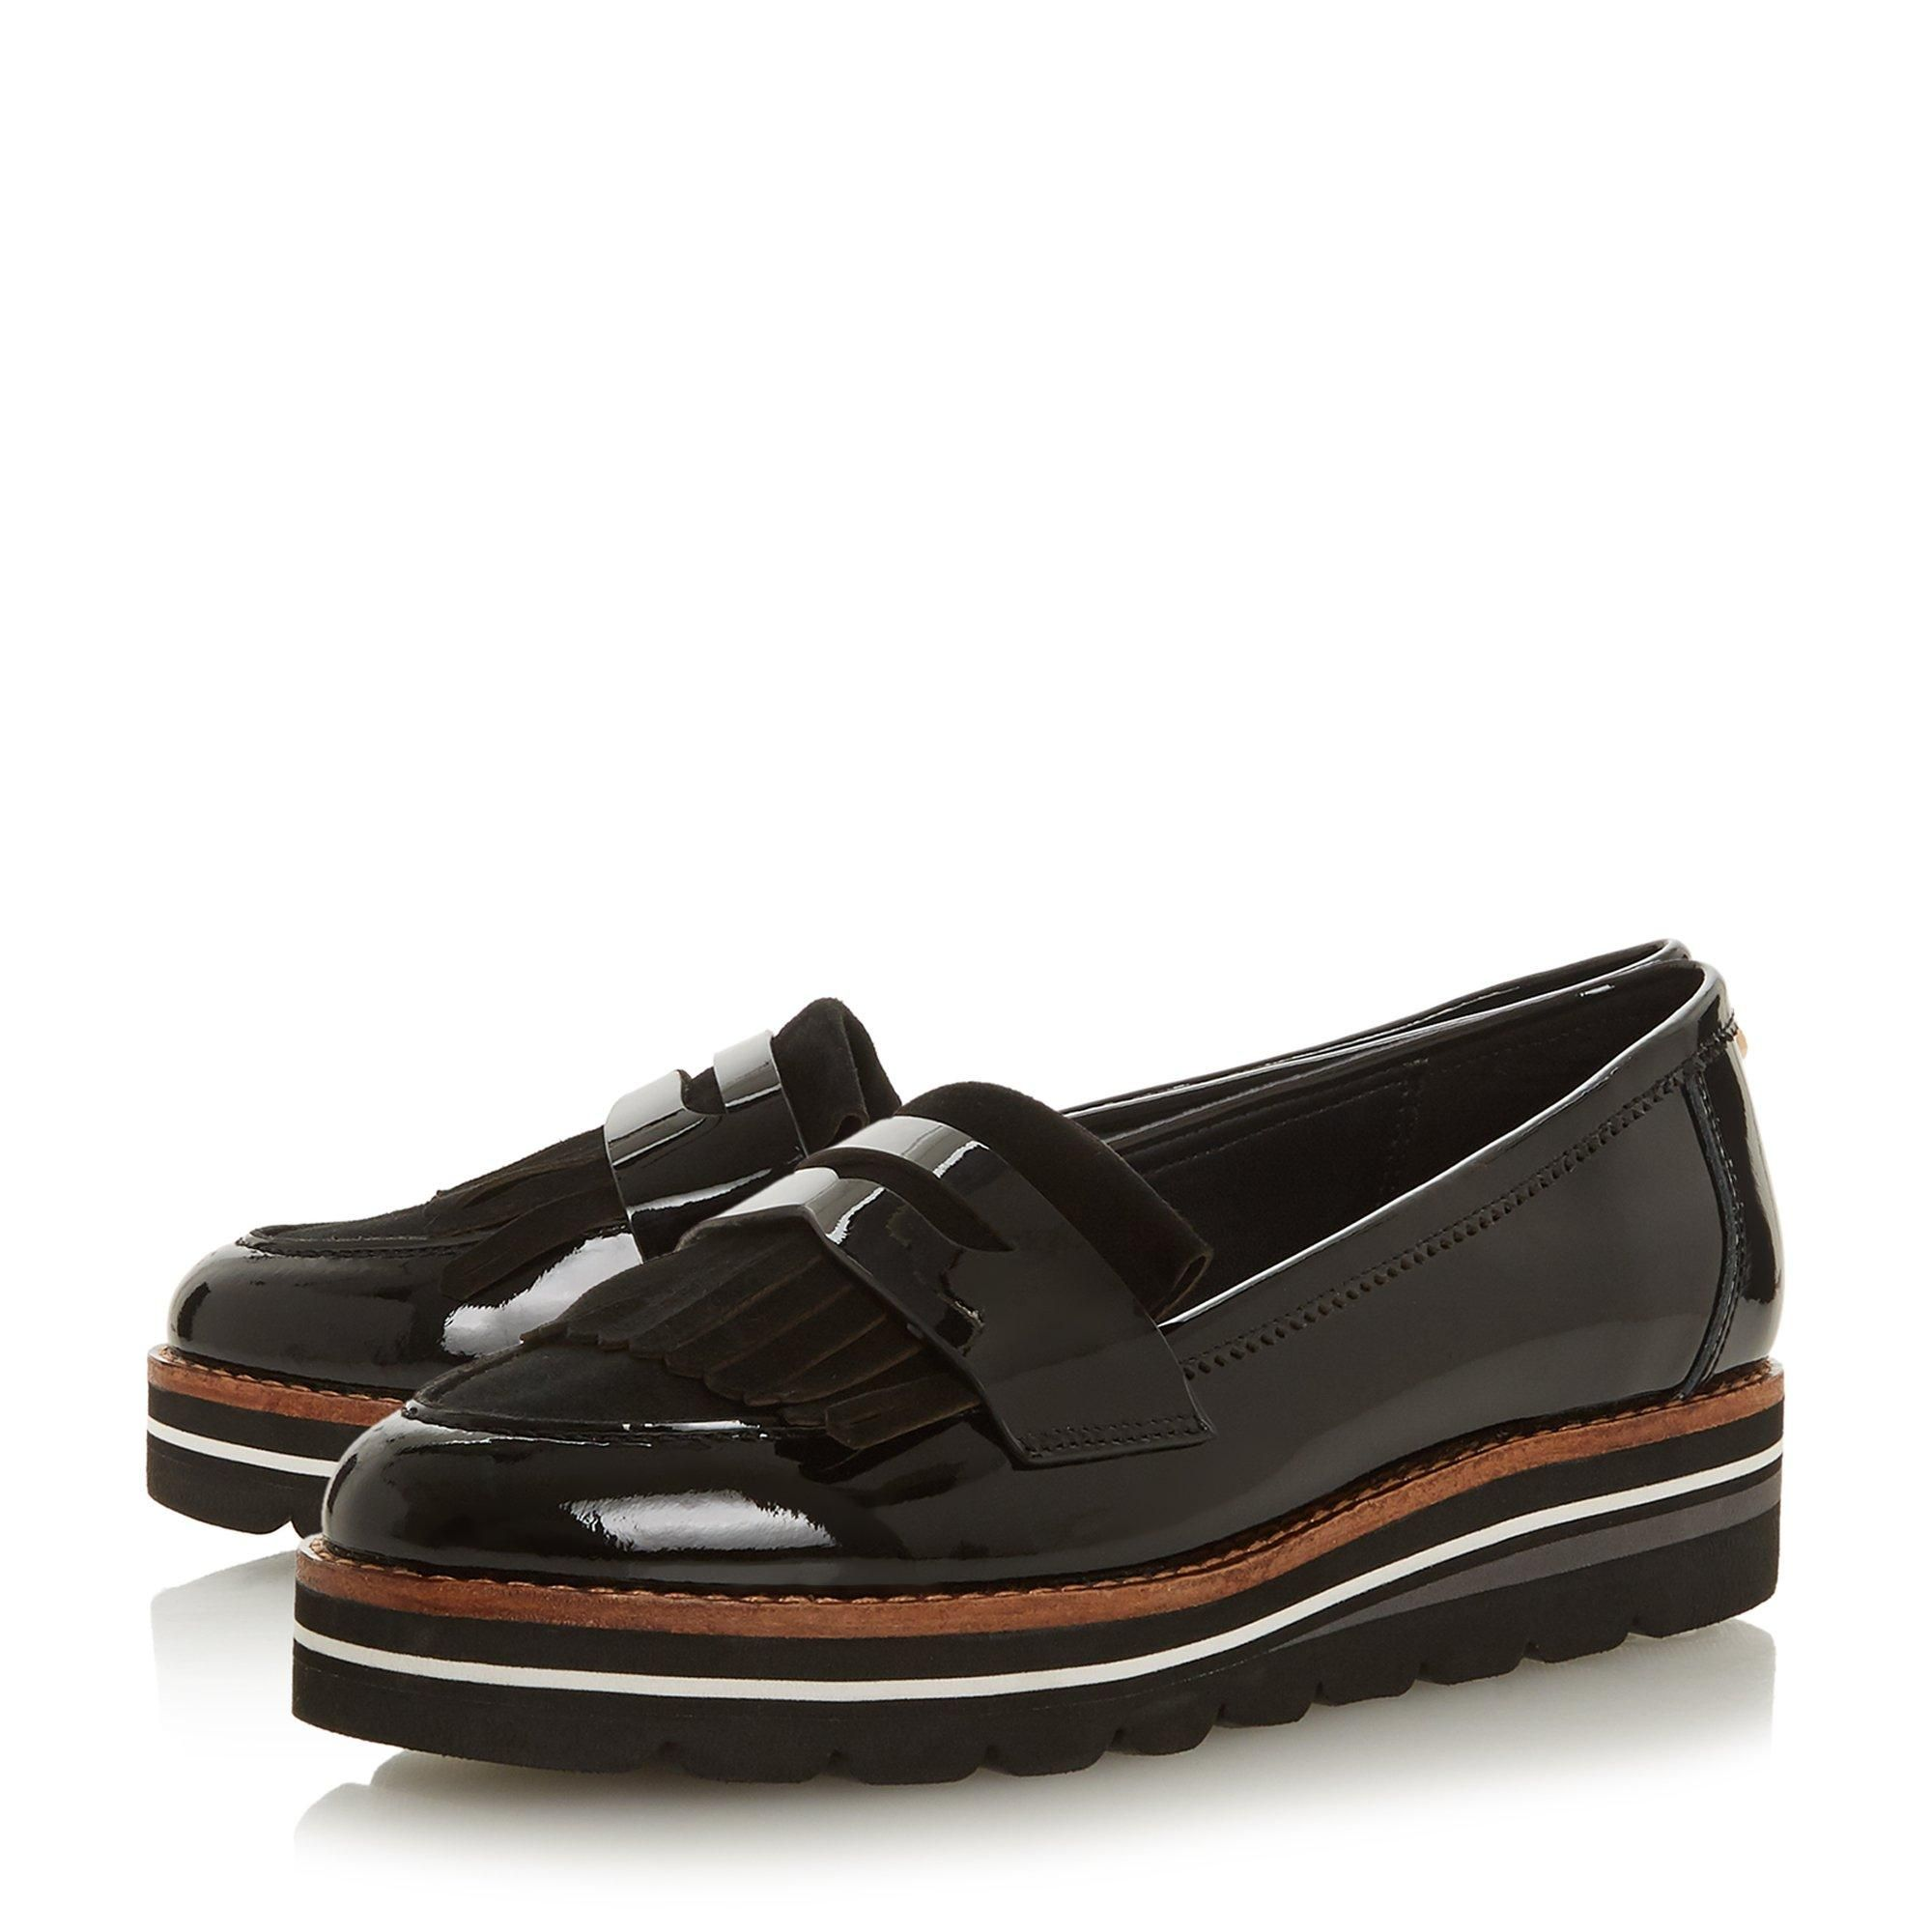 Dune Ladies GRACELLA Flatform Slip On Loafer